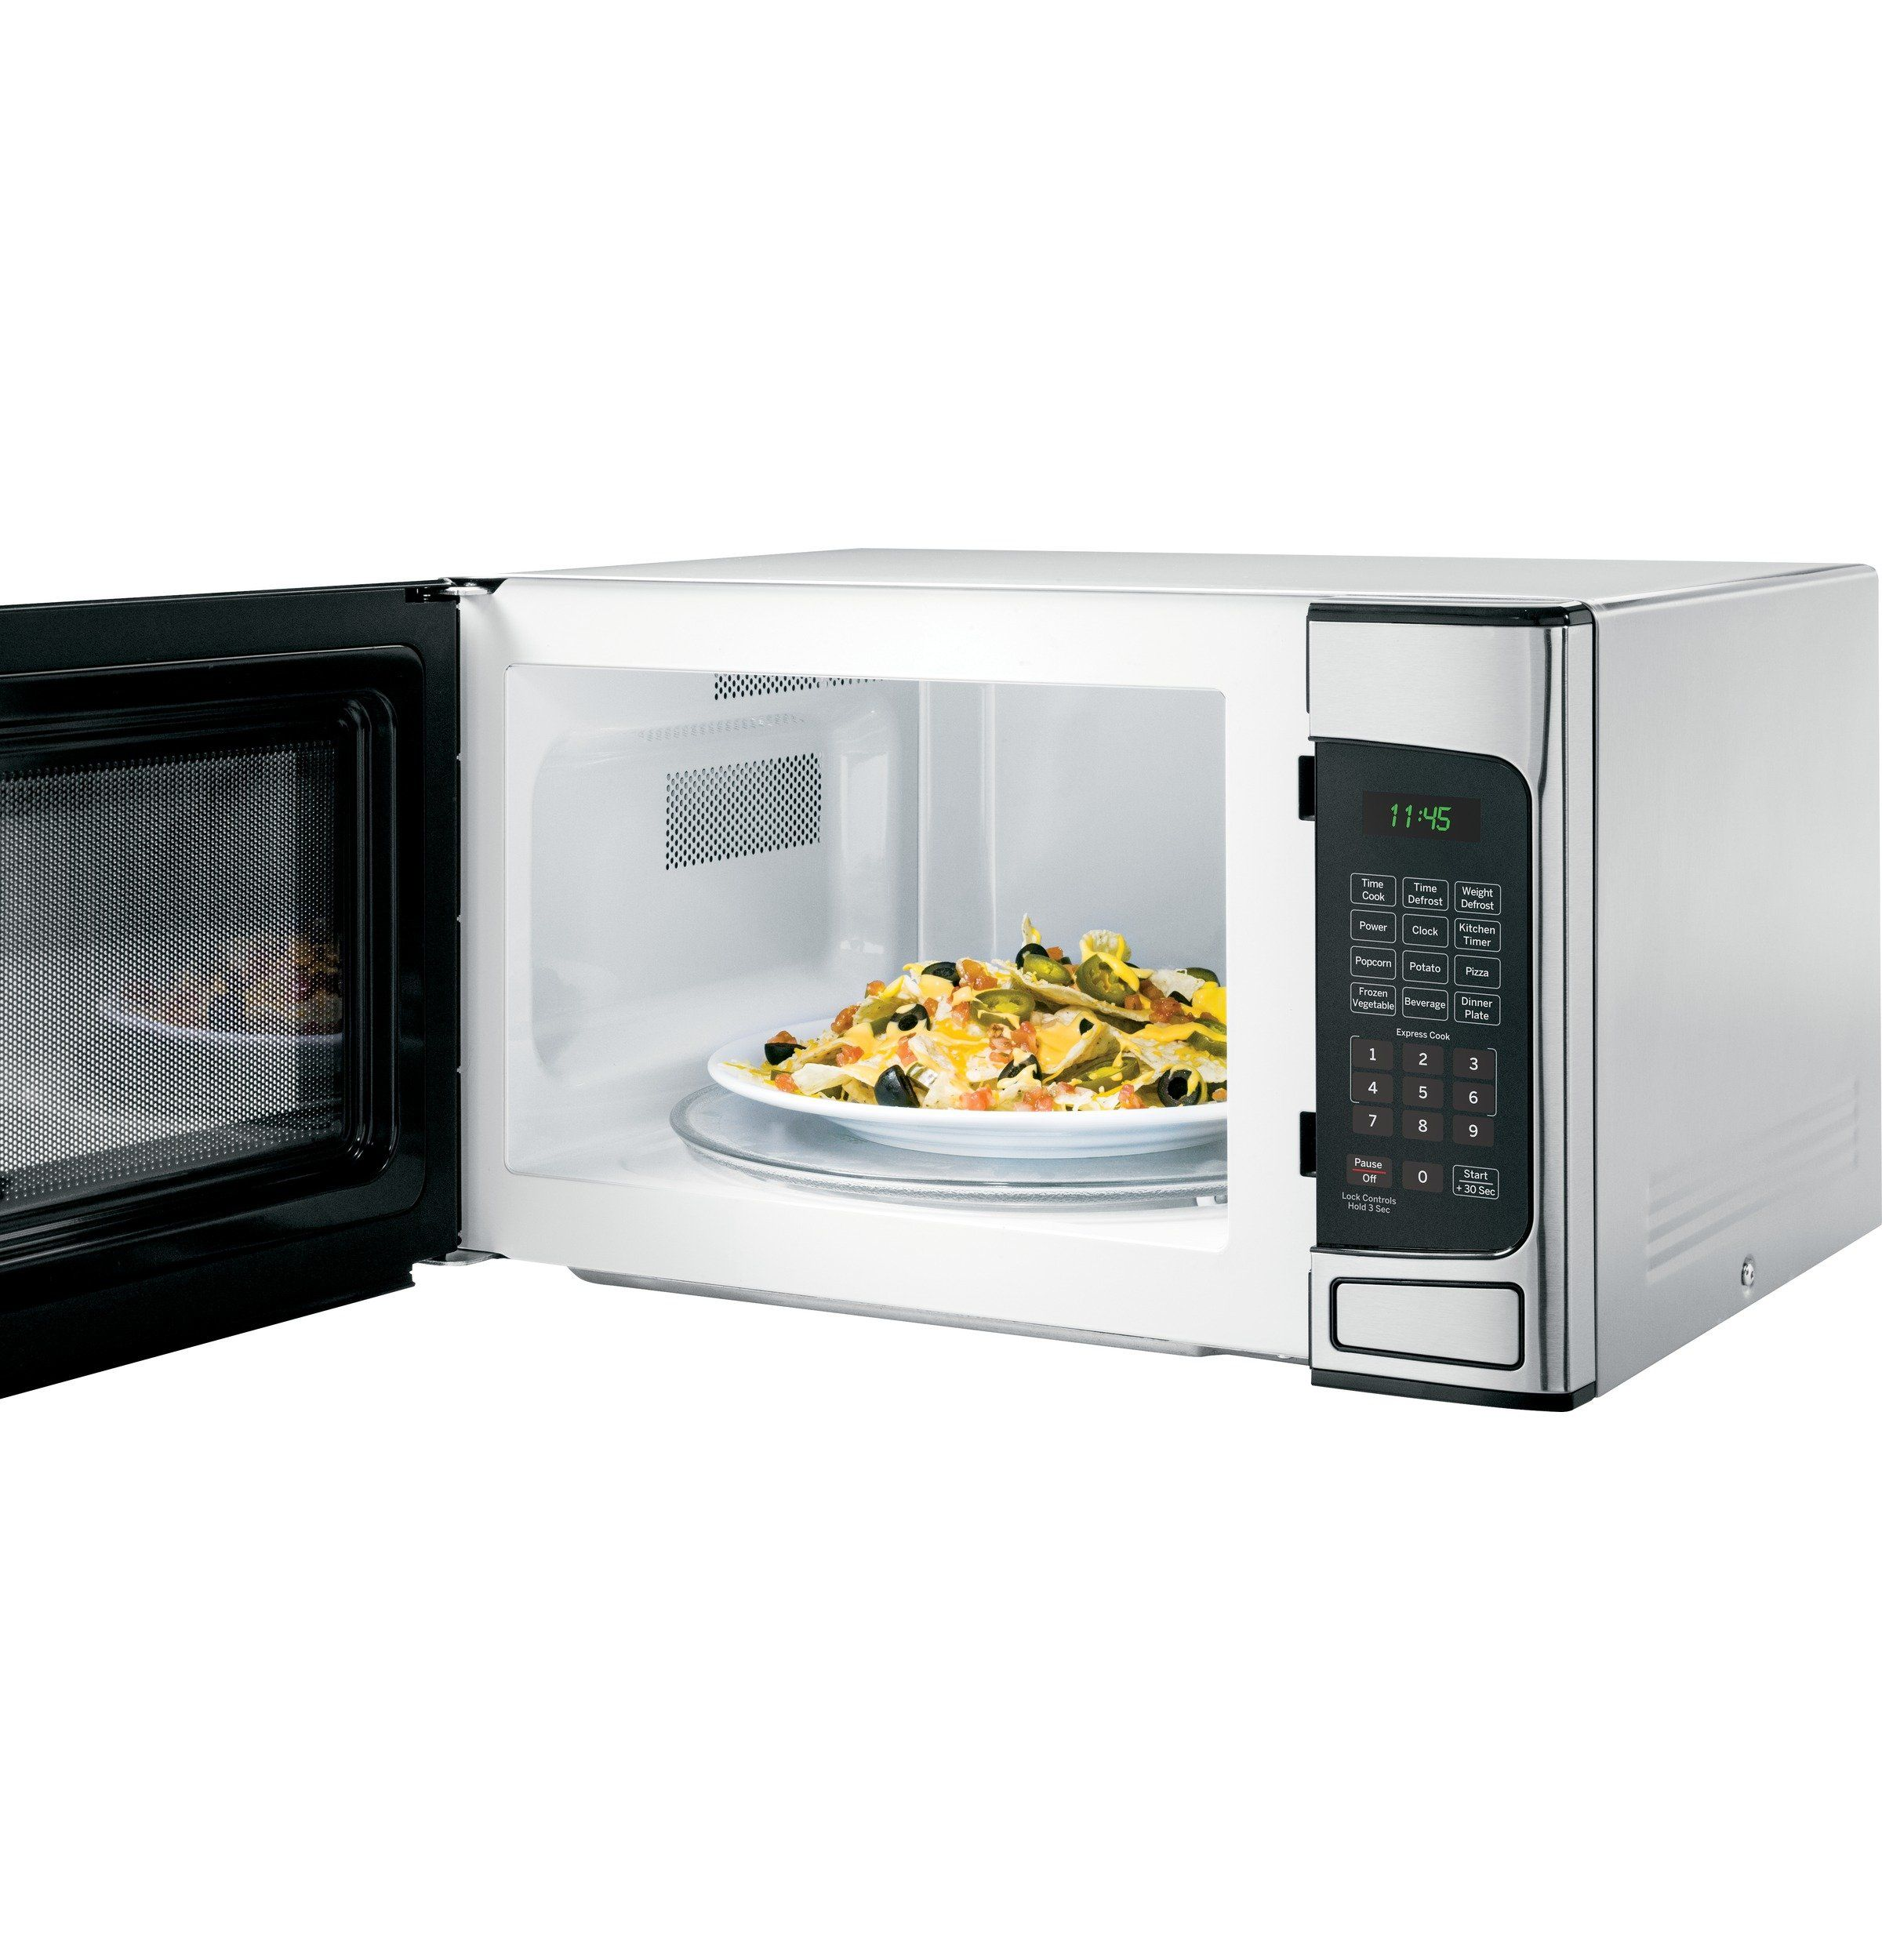 GE 1.1 cu ft Countertop Microwave Oven, Stainless